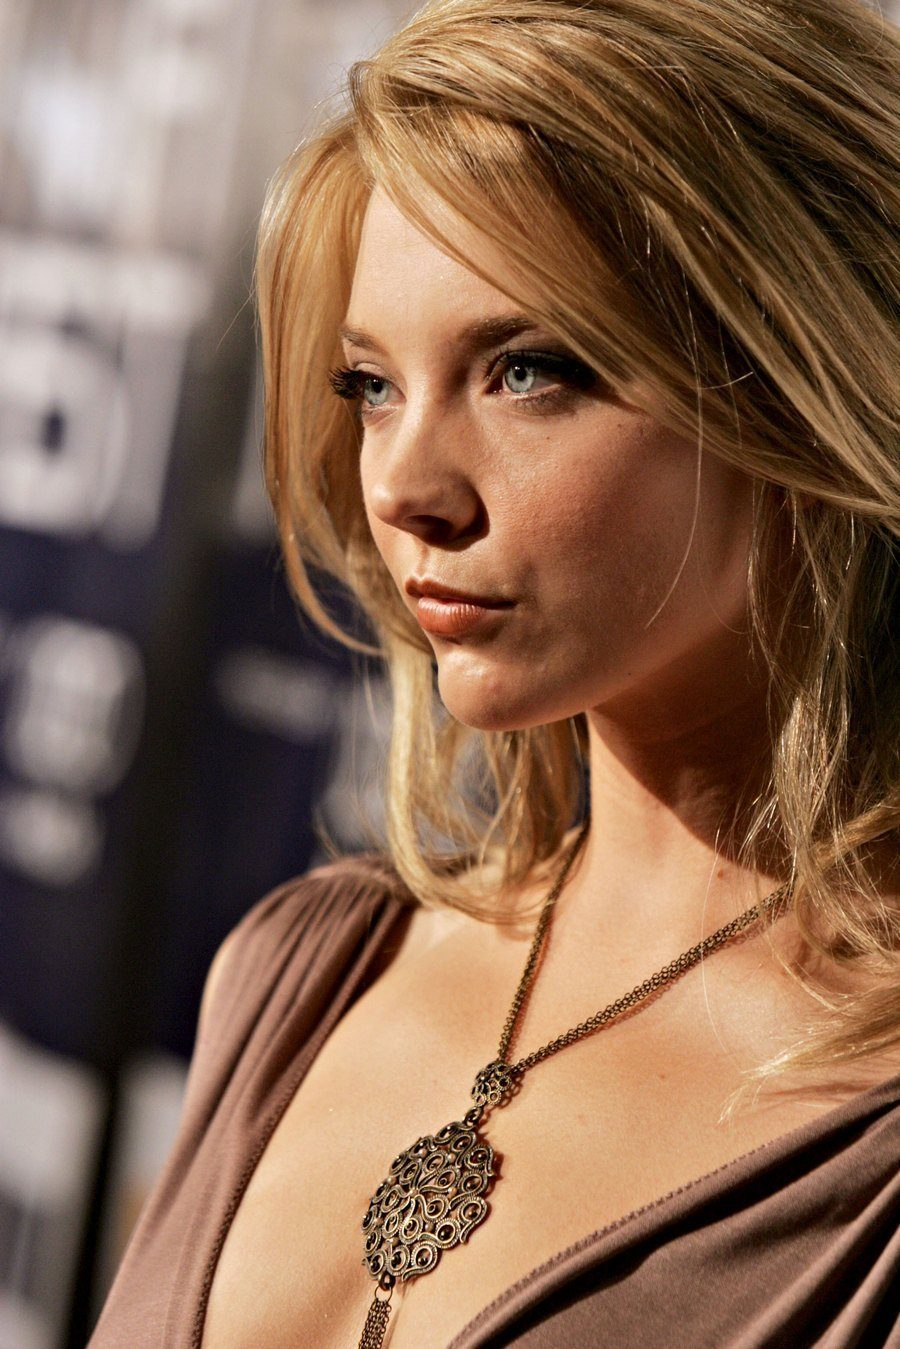 Game of Thrones Actress Natalie Dormer Heads to Professor and the